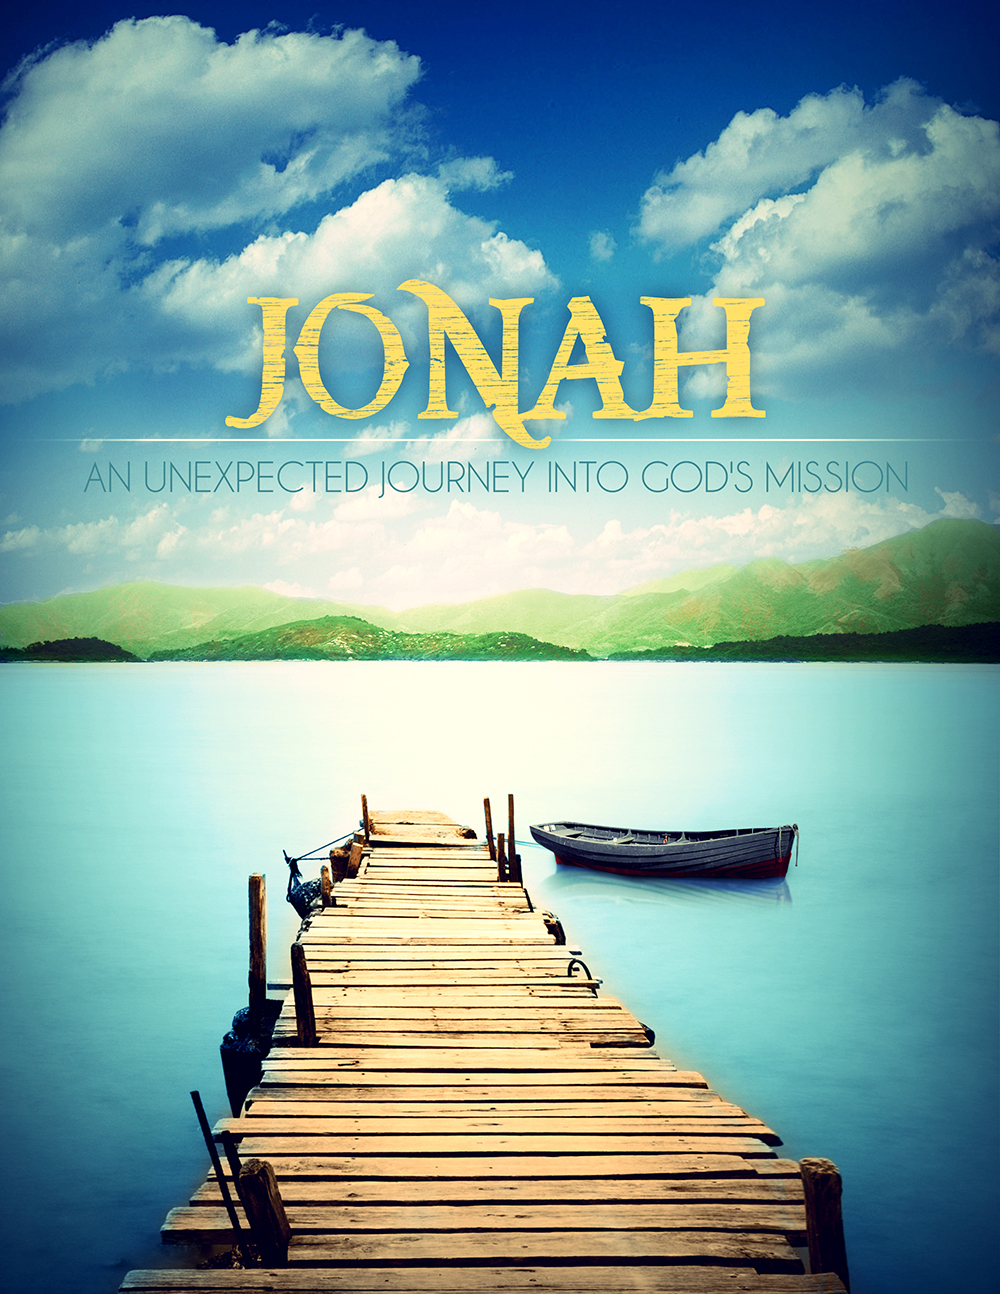 Jonah_01_color2.jpg